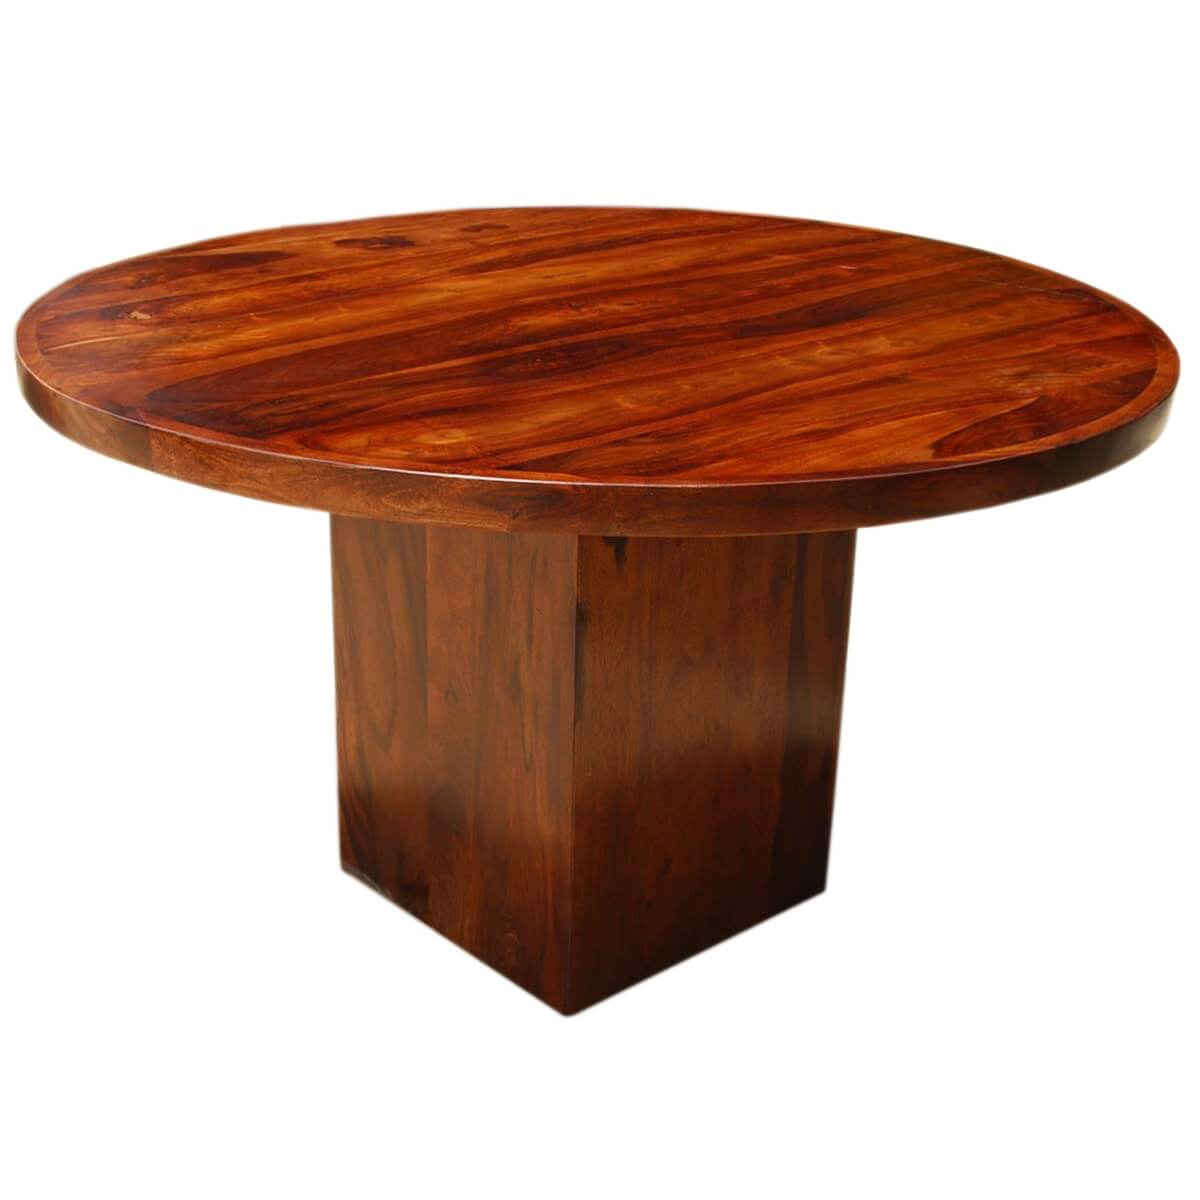 Wood Round Dining Table: Solid Wood Rustic Round Dining Table W Square Pedestal